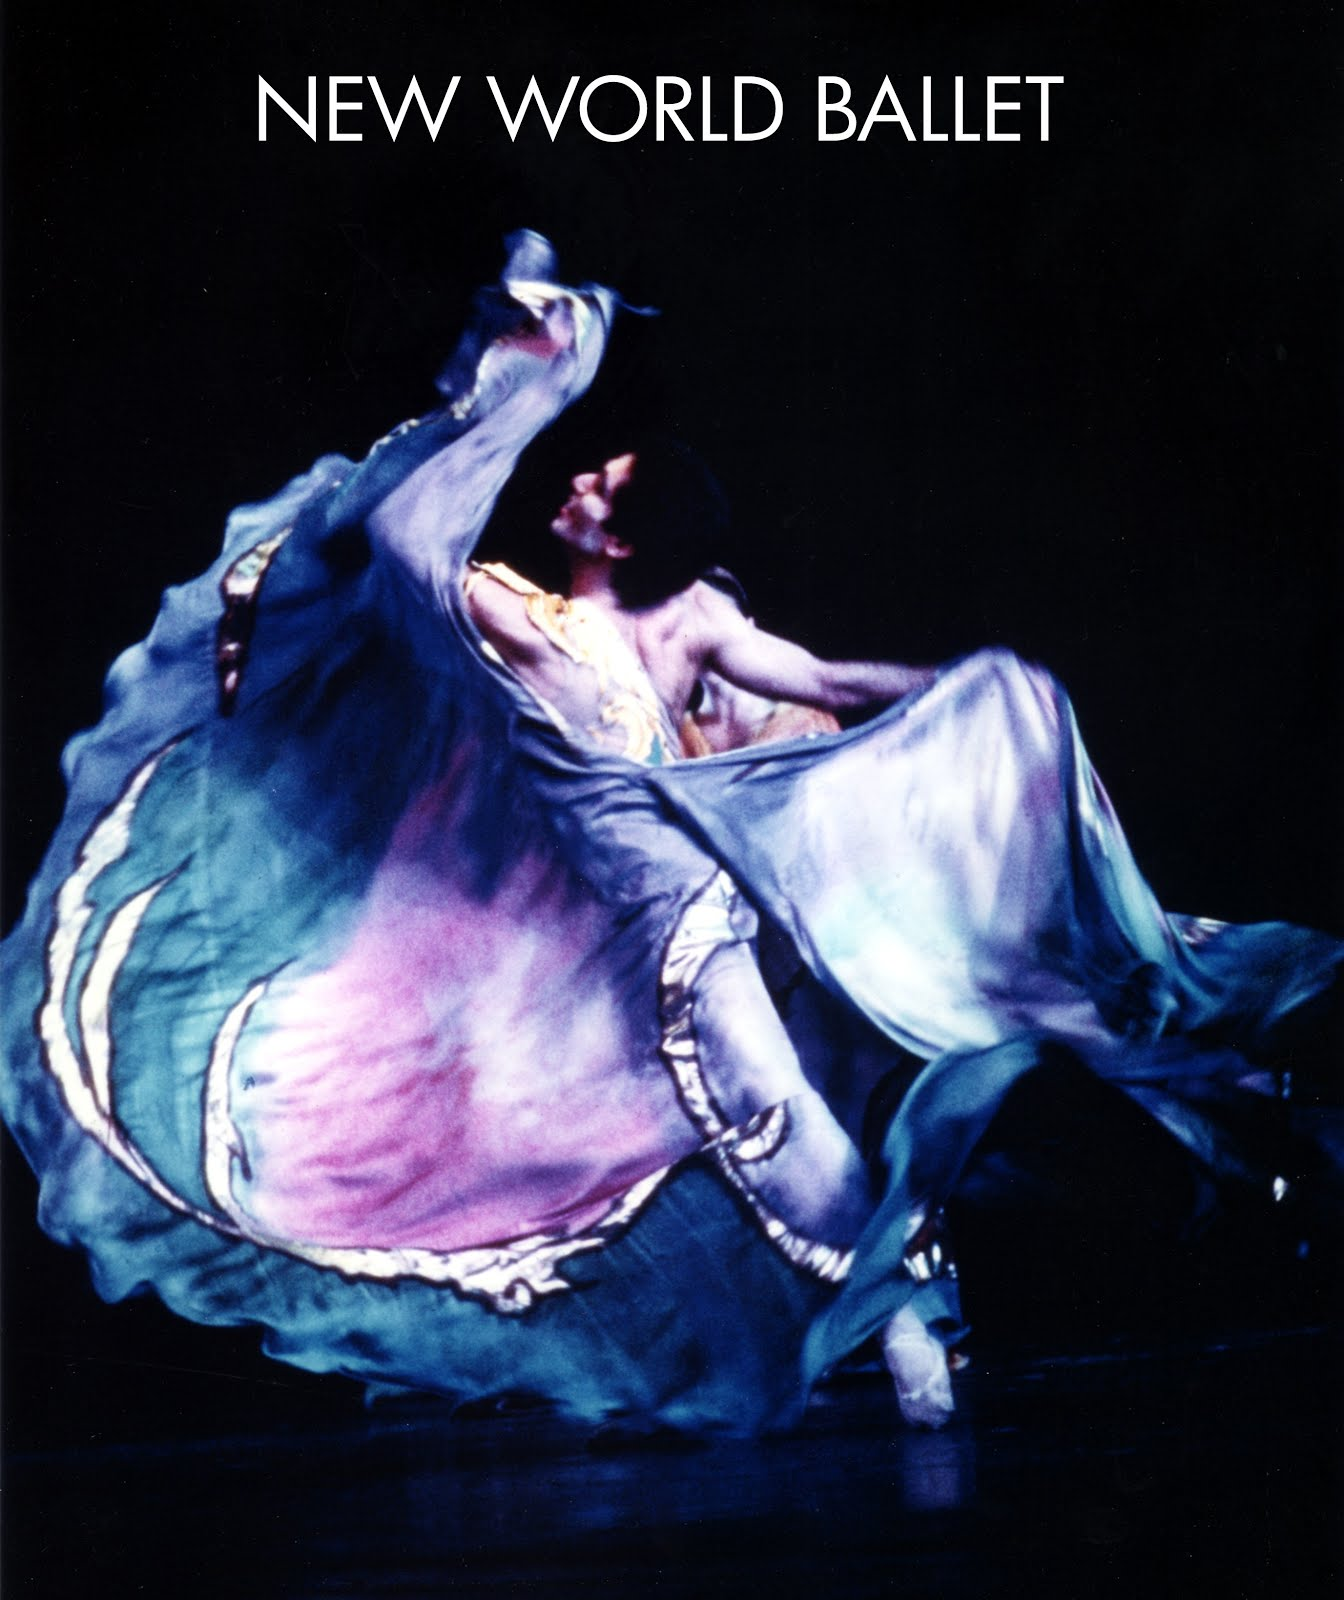 NEW WORLD BALLET